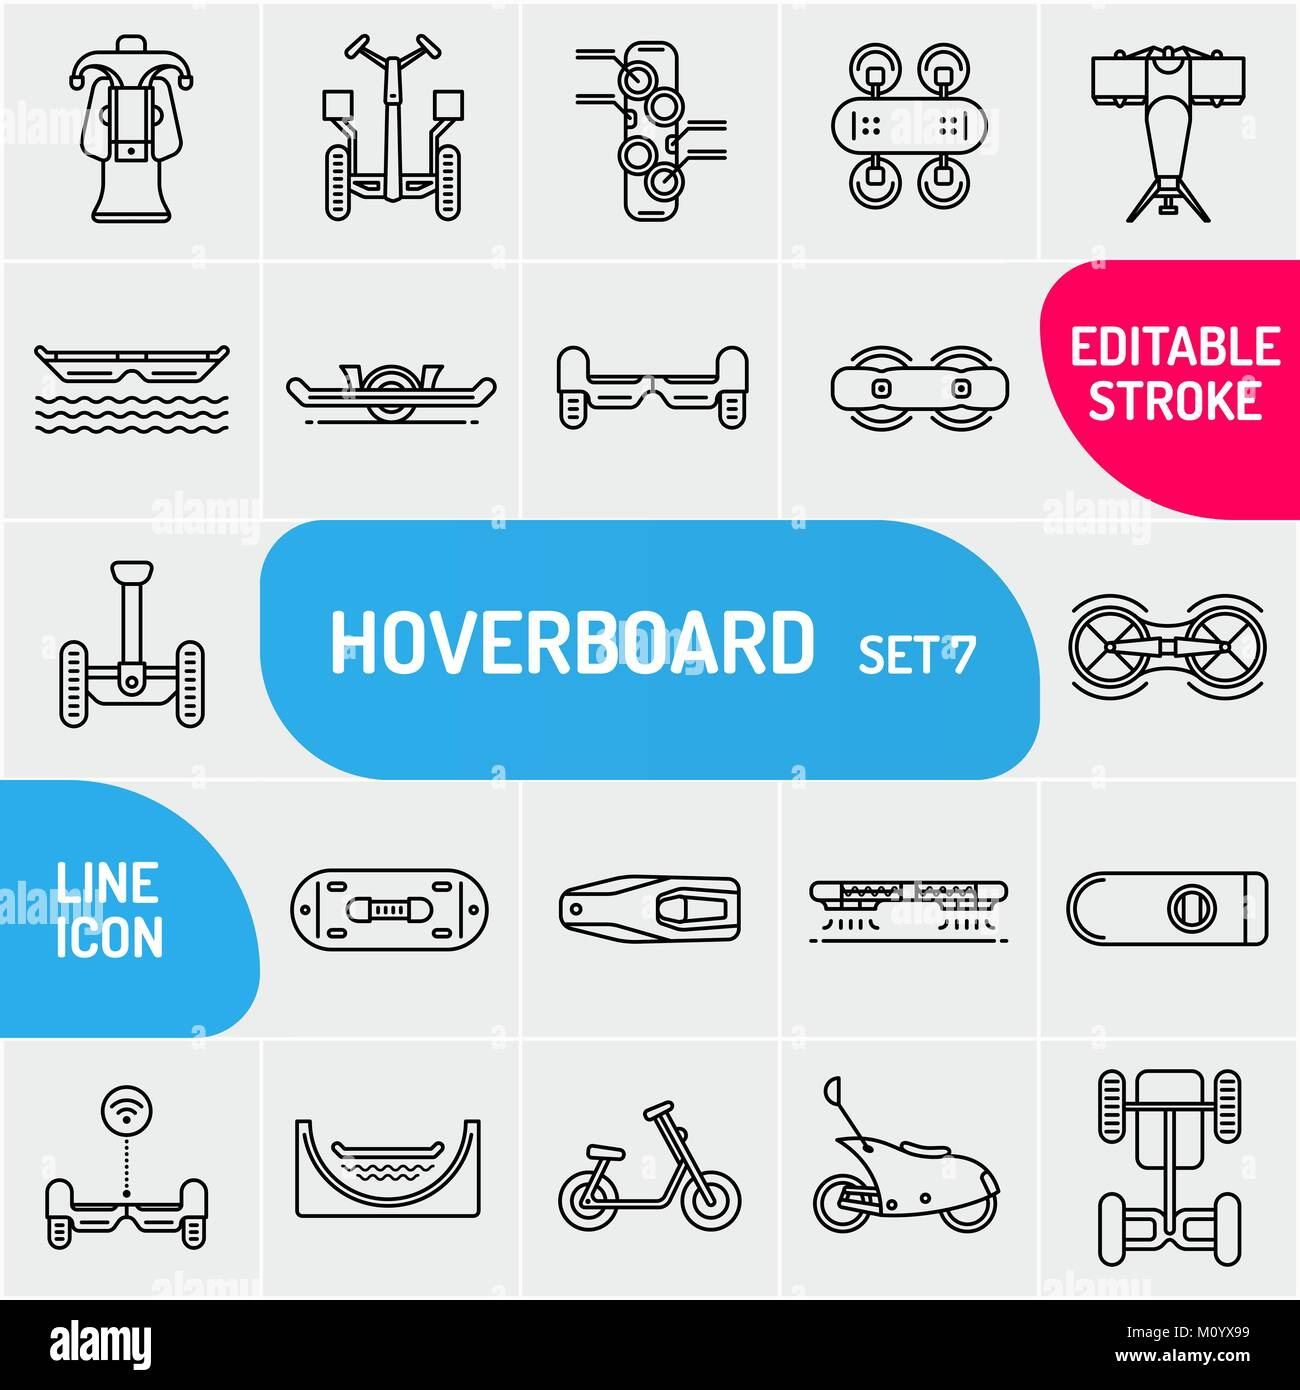 Modern thin line self-balancing electric scooters icons set. Premium quality outline hoverboard symbol collection. - Stock Image